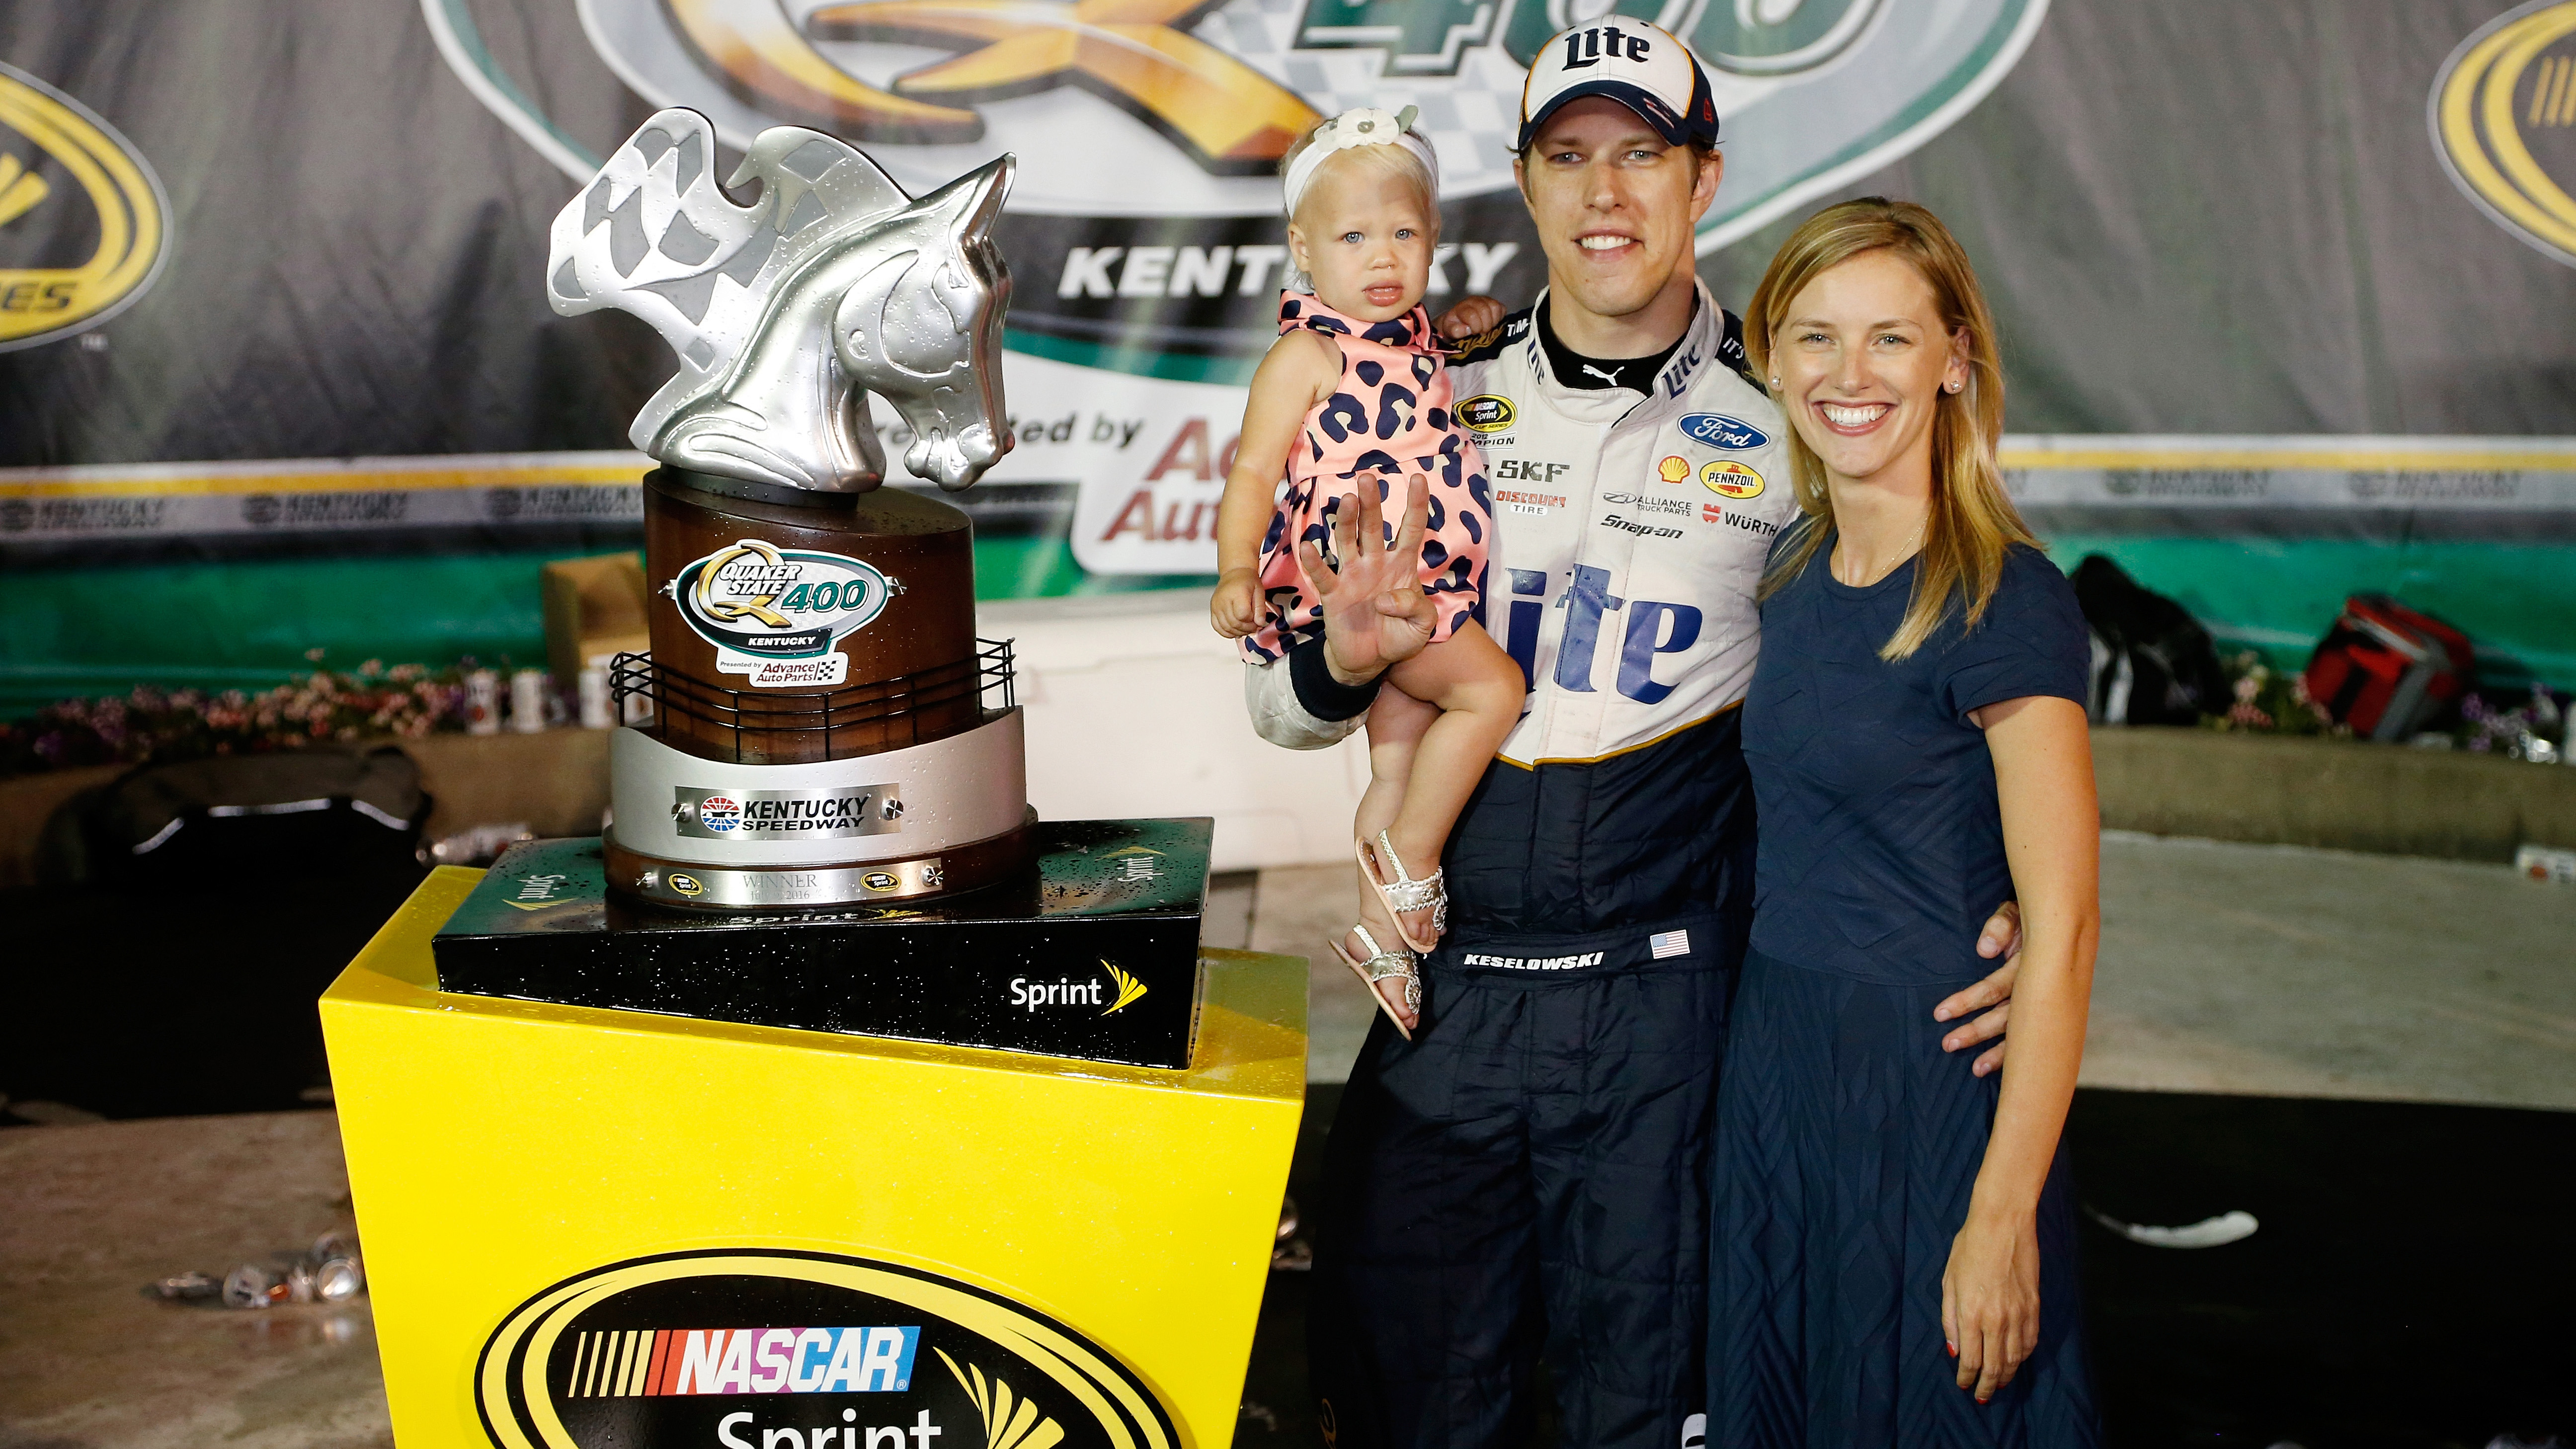 SPARTA, KY - JULY 09:  Brad Keselowski, driver of the #2 Miller Lite Ford, poses in Victory Lane with his girlfriend, Paige White, and daughter, Scarlett, after winning the NASCAR Sprint Cup Series Quaker State 400 at Kentucky Speedway on July 9, 2016 in Sparta, Kentucky.  (Photo by Brian Lawdermilk/NASCAR via Getty Images)